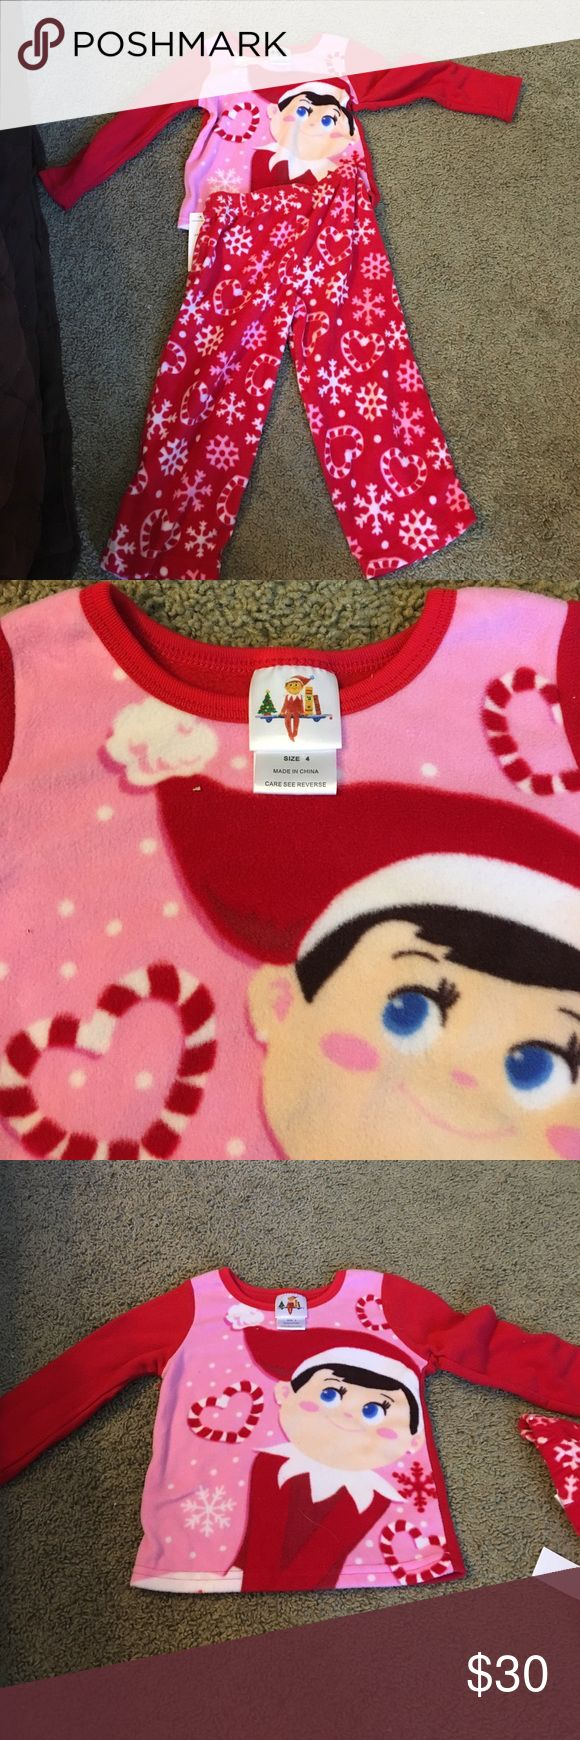 Elf on shelf set Brand nwot , never worn! Size 4 KIDS- true to size, comes from a smoke and pet free environment :) There are no flaws, tears, or marks. I am open offers! Additional pictures upon request. ELF Pajamas Pajama Sets